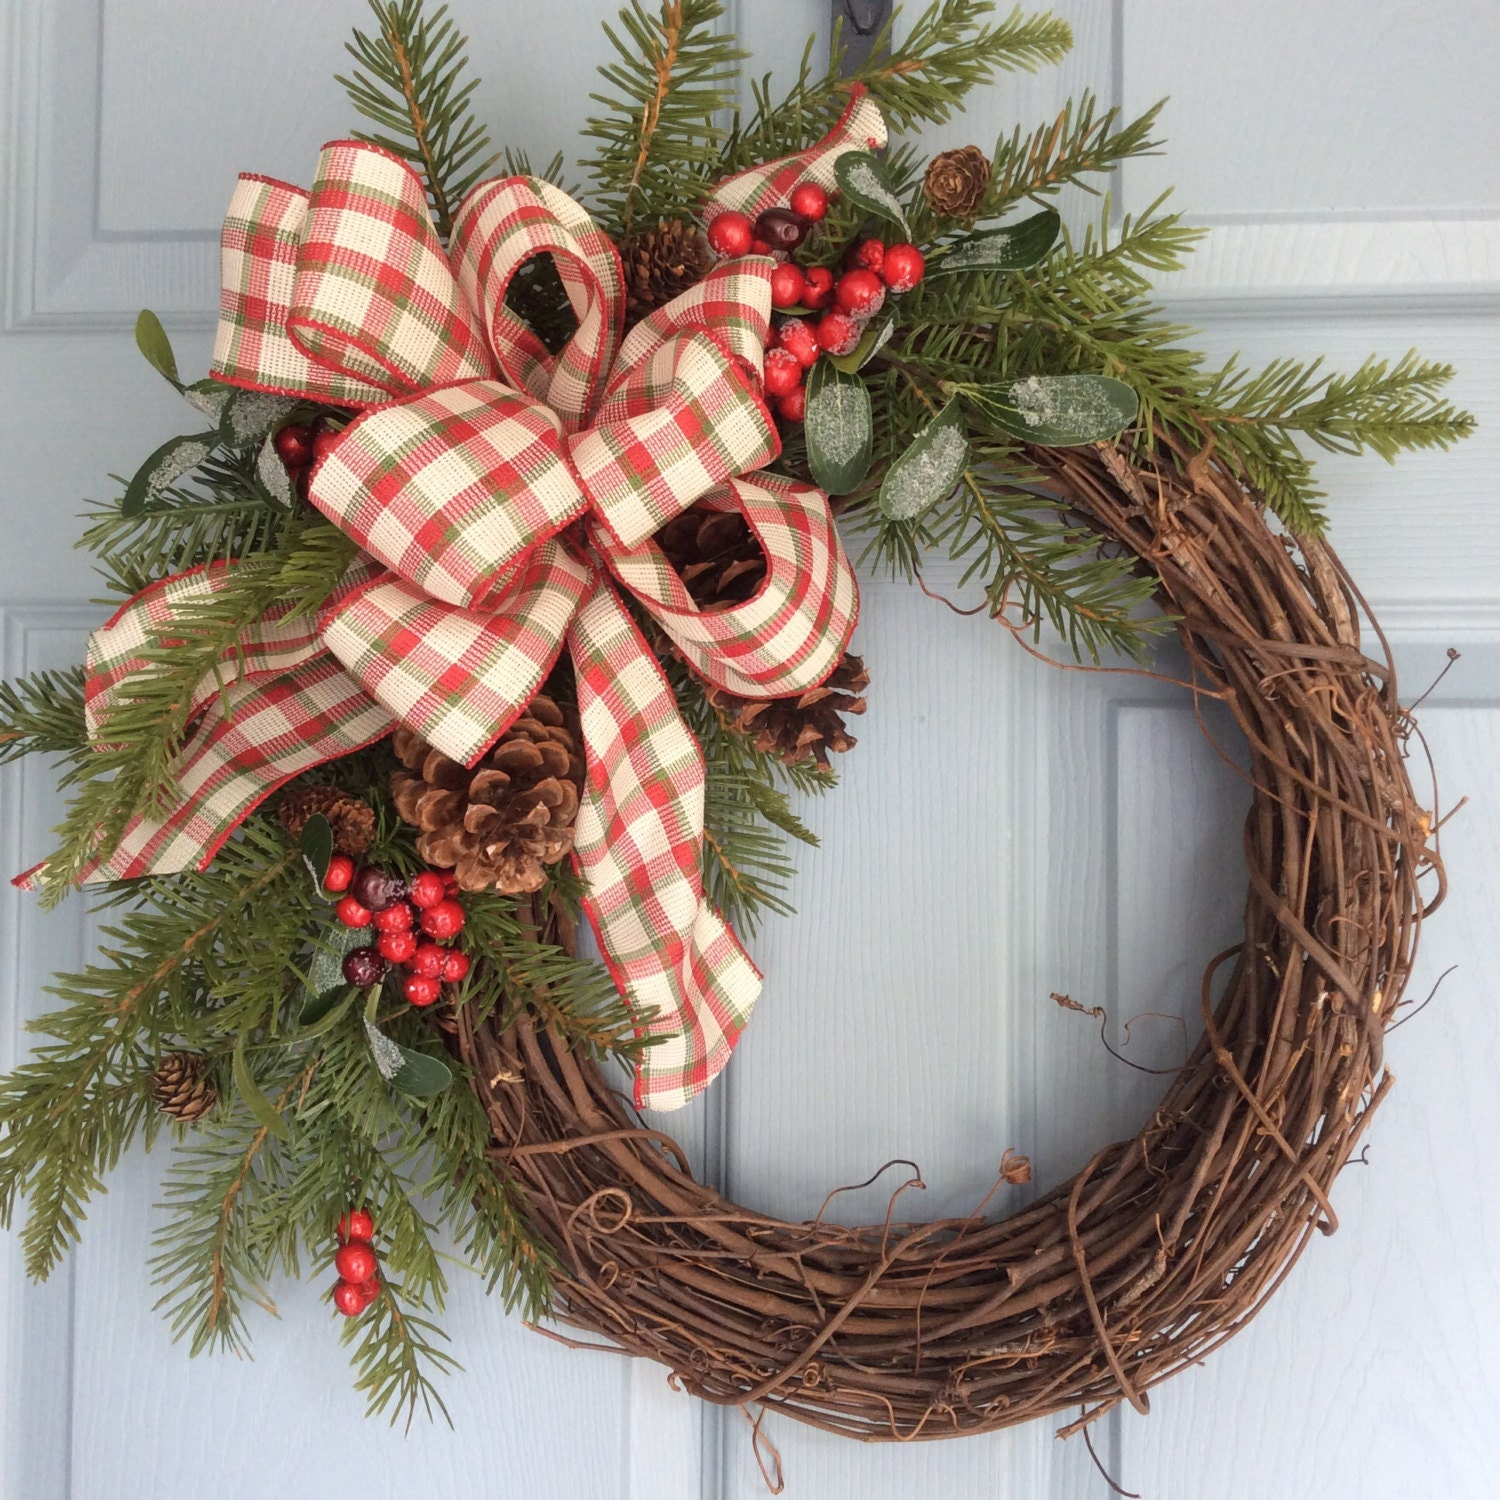 Christmas wreath rustic wreath holiday wreath winter Christmas wreath decorations